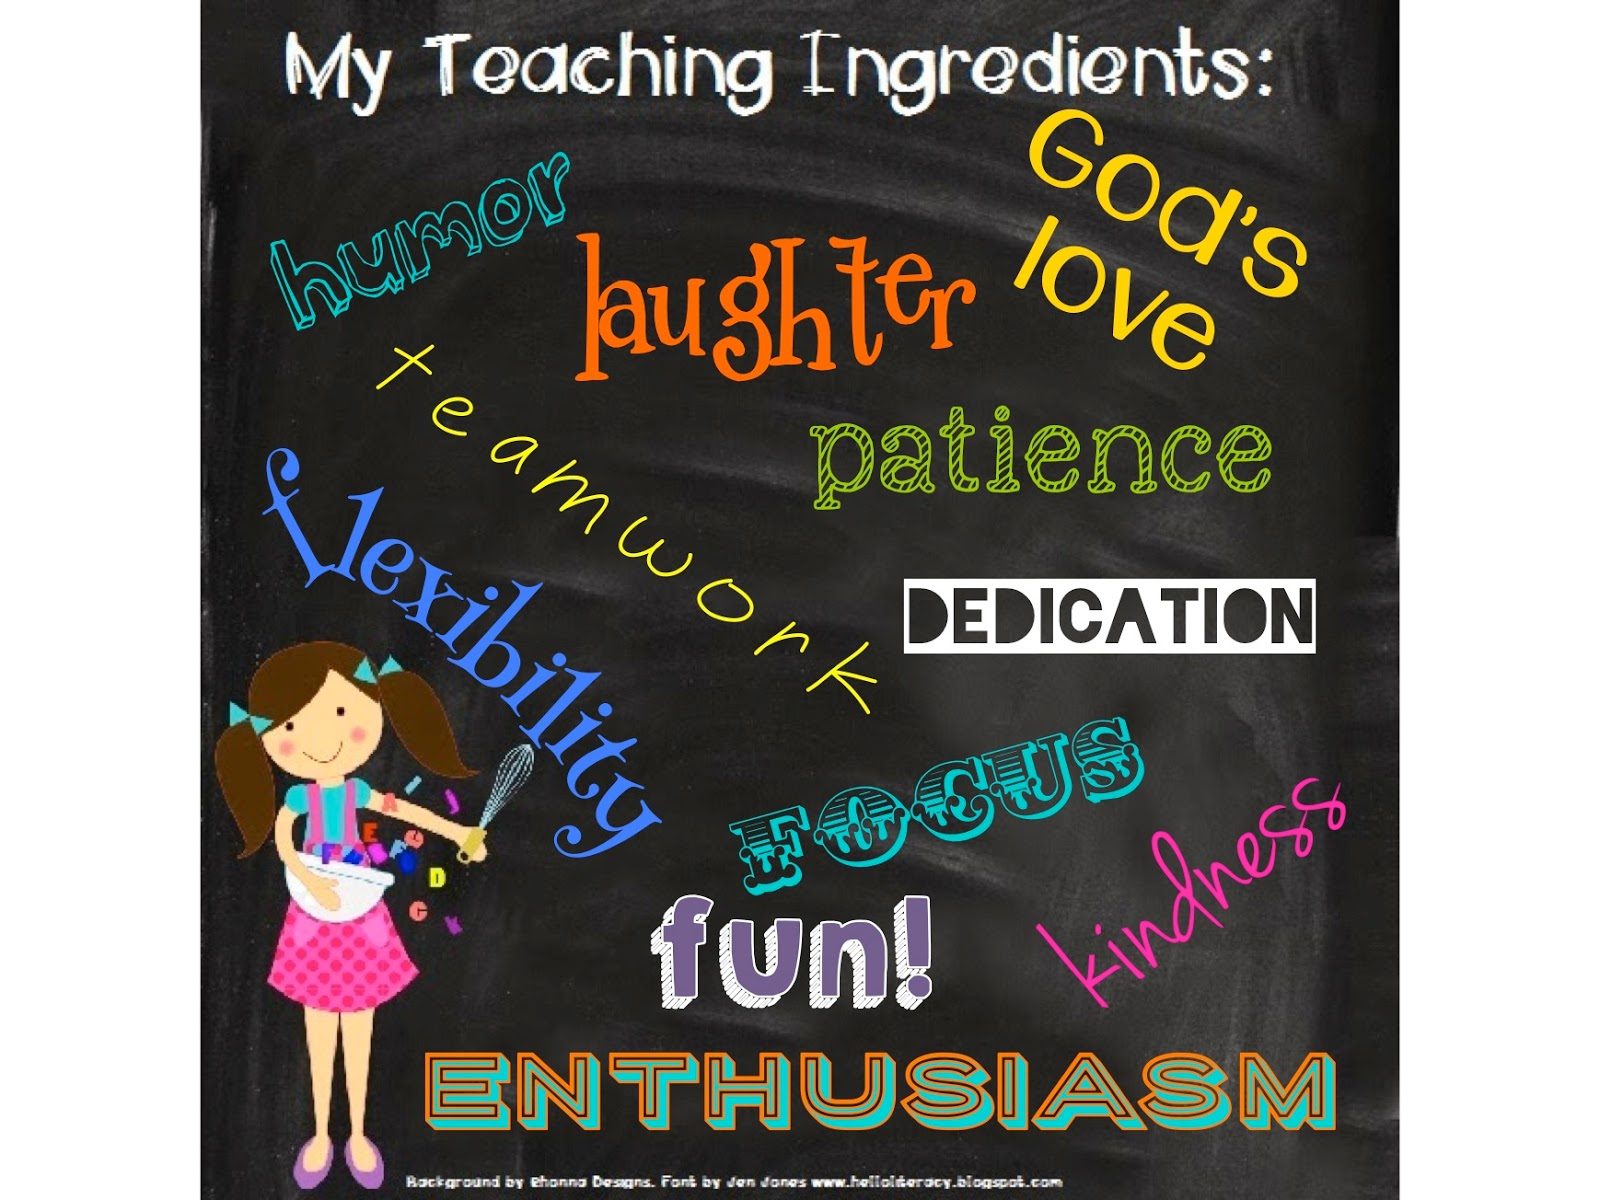 Light Bulbs and Laughter - My Ingredients for Teaching